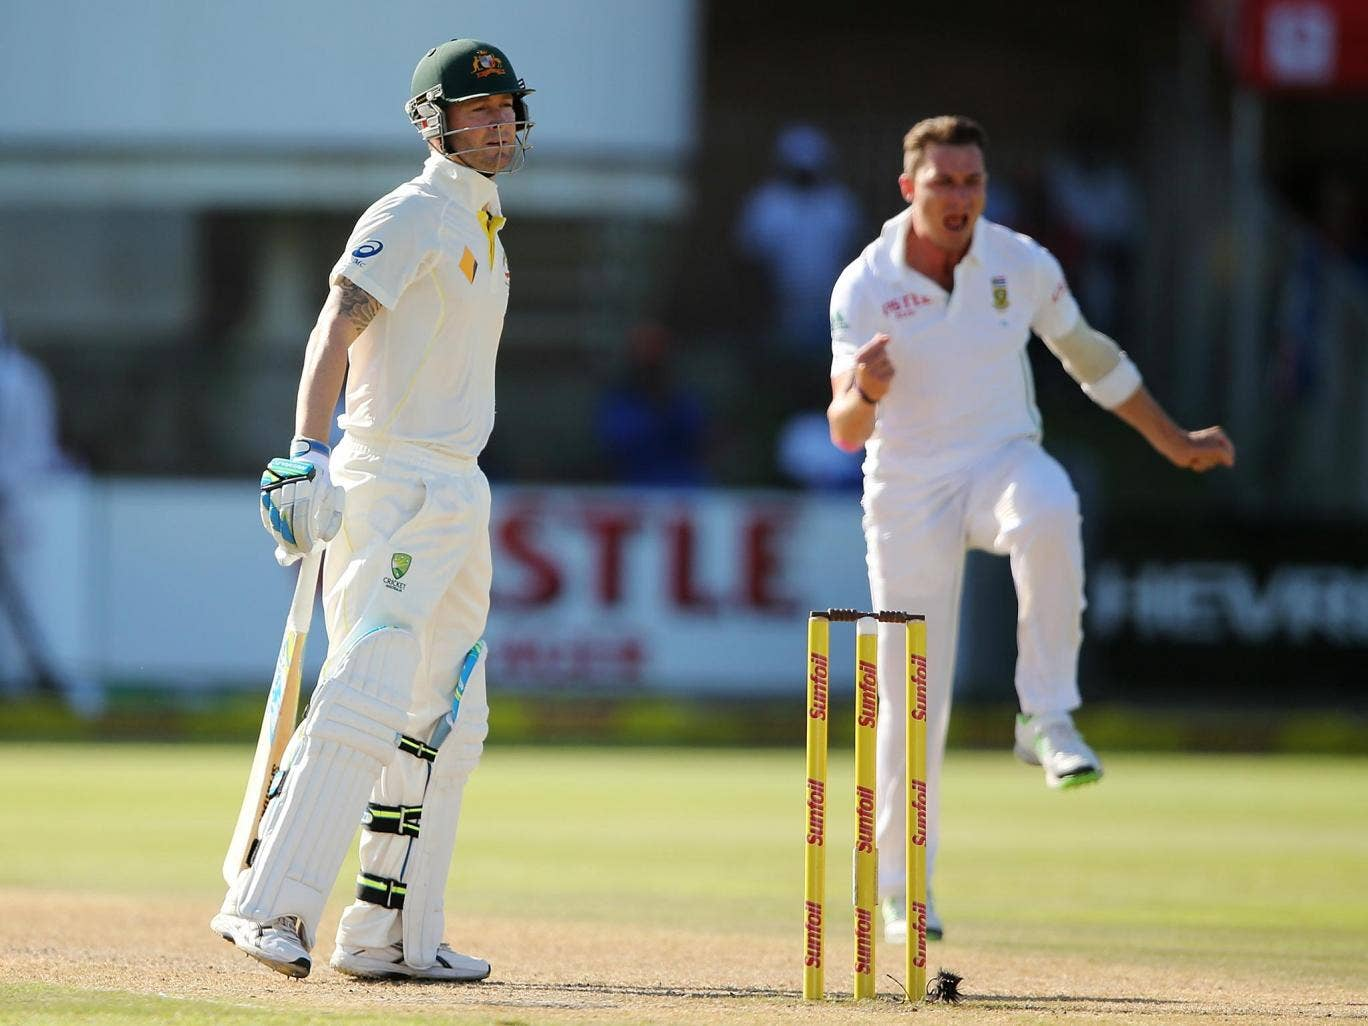 Michael Clarke has apologised for his spat with South Africa bowler Dale Steyn